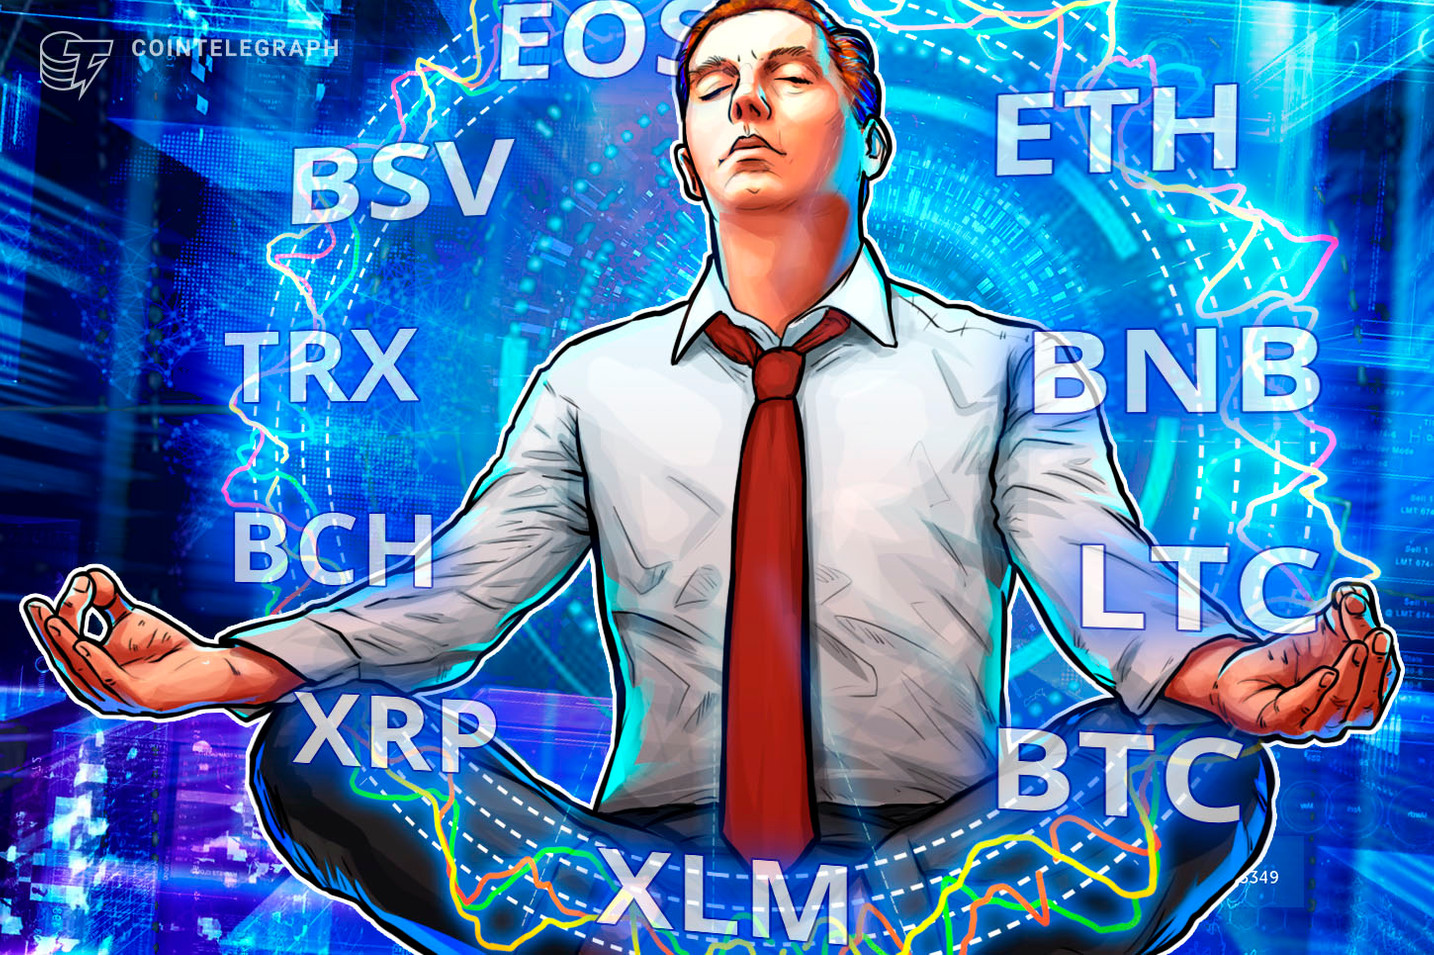 Bitcoin, Ethereum, Ripple, EOS, Litecoin, Bitcoin Cash, Binance Coin, Stellar, Tron, Bitcoin SV: Price Analysis, March 4